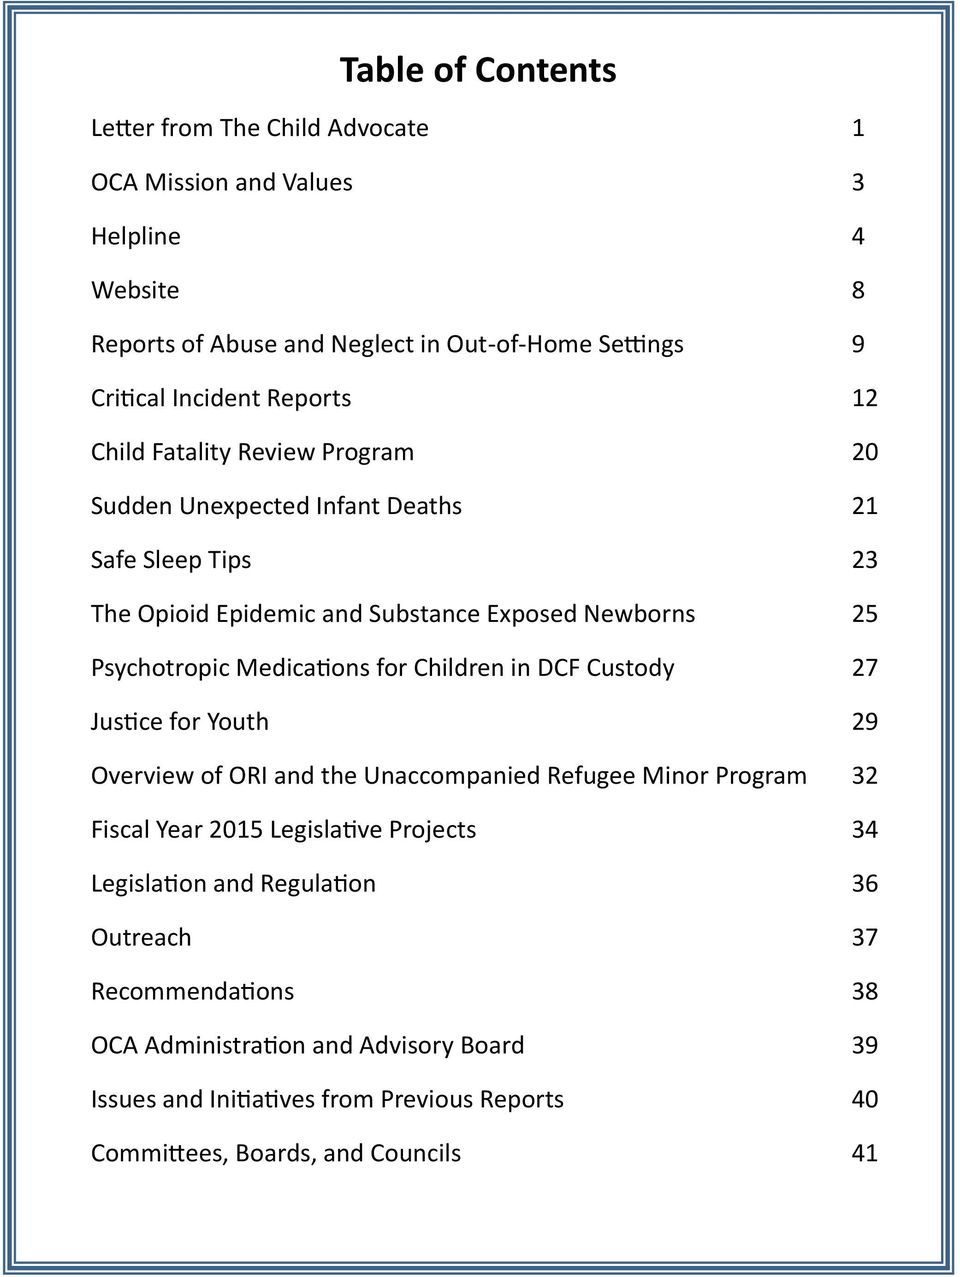 Medications for Children in DCF Custody 27 Justice for Youth 29 Overview of ORI and the Unaccompanied Refugee Minor Program 32 Fiscal Year 2015 Legislative Projects 34